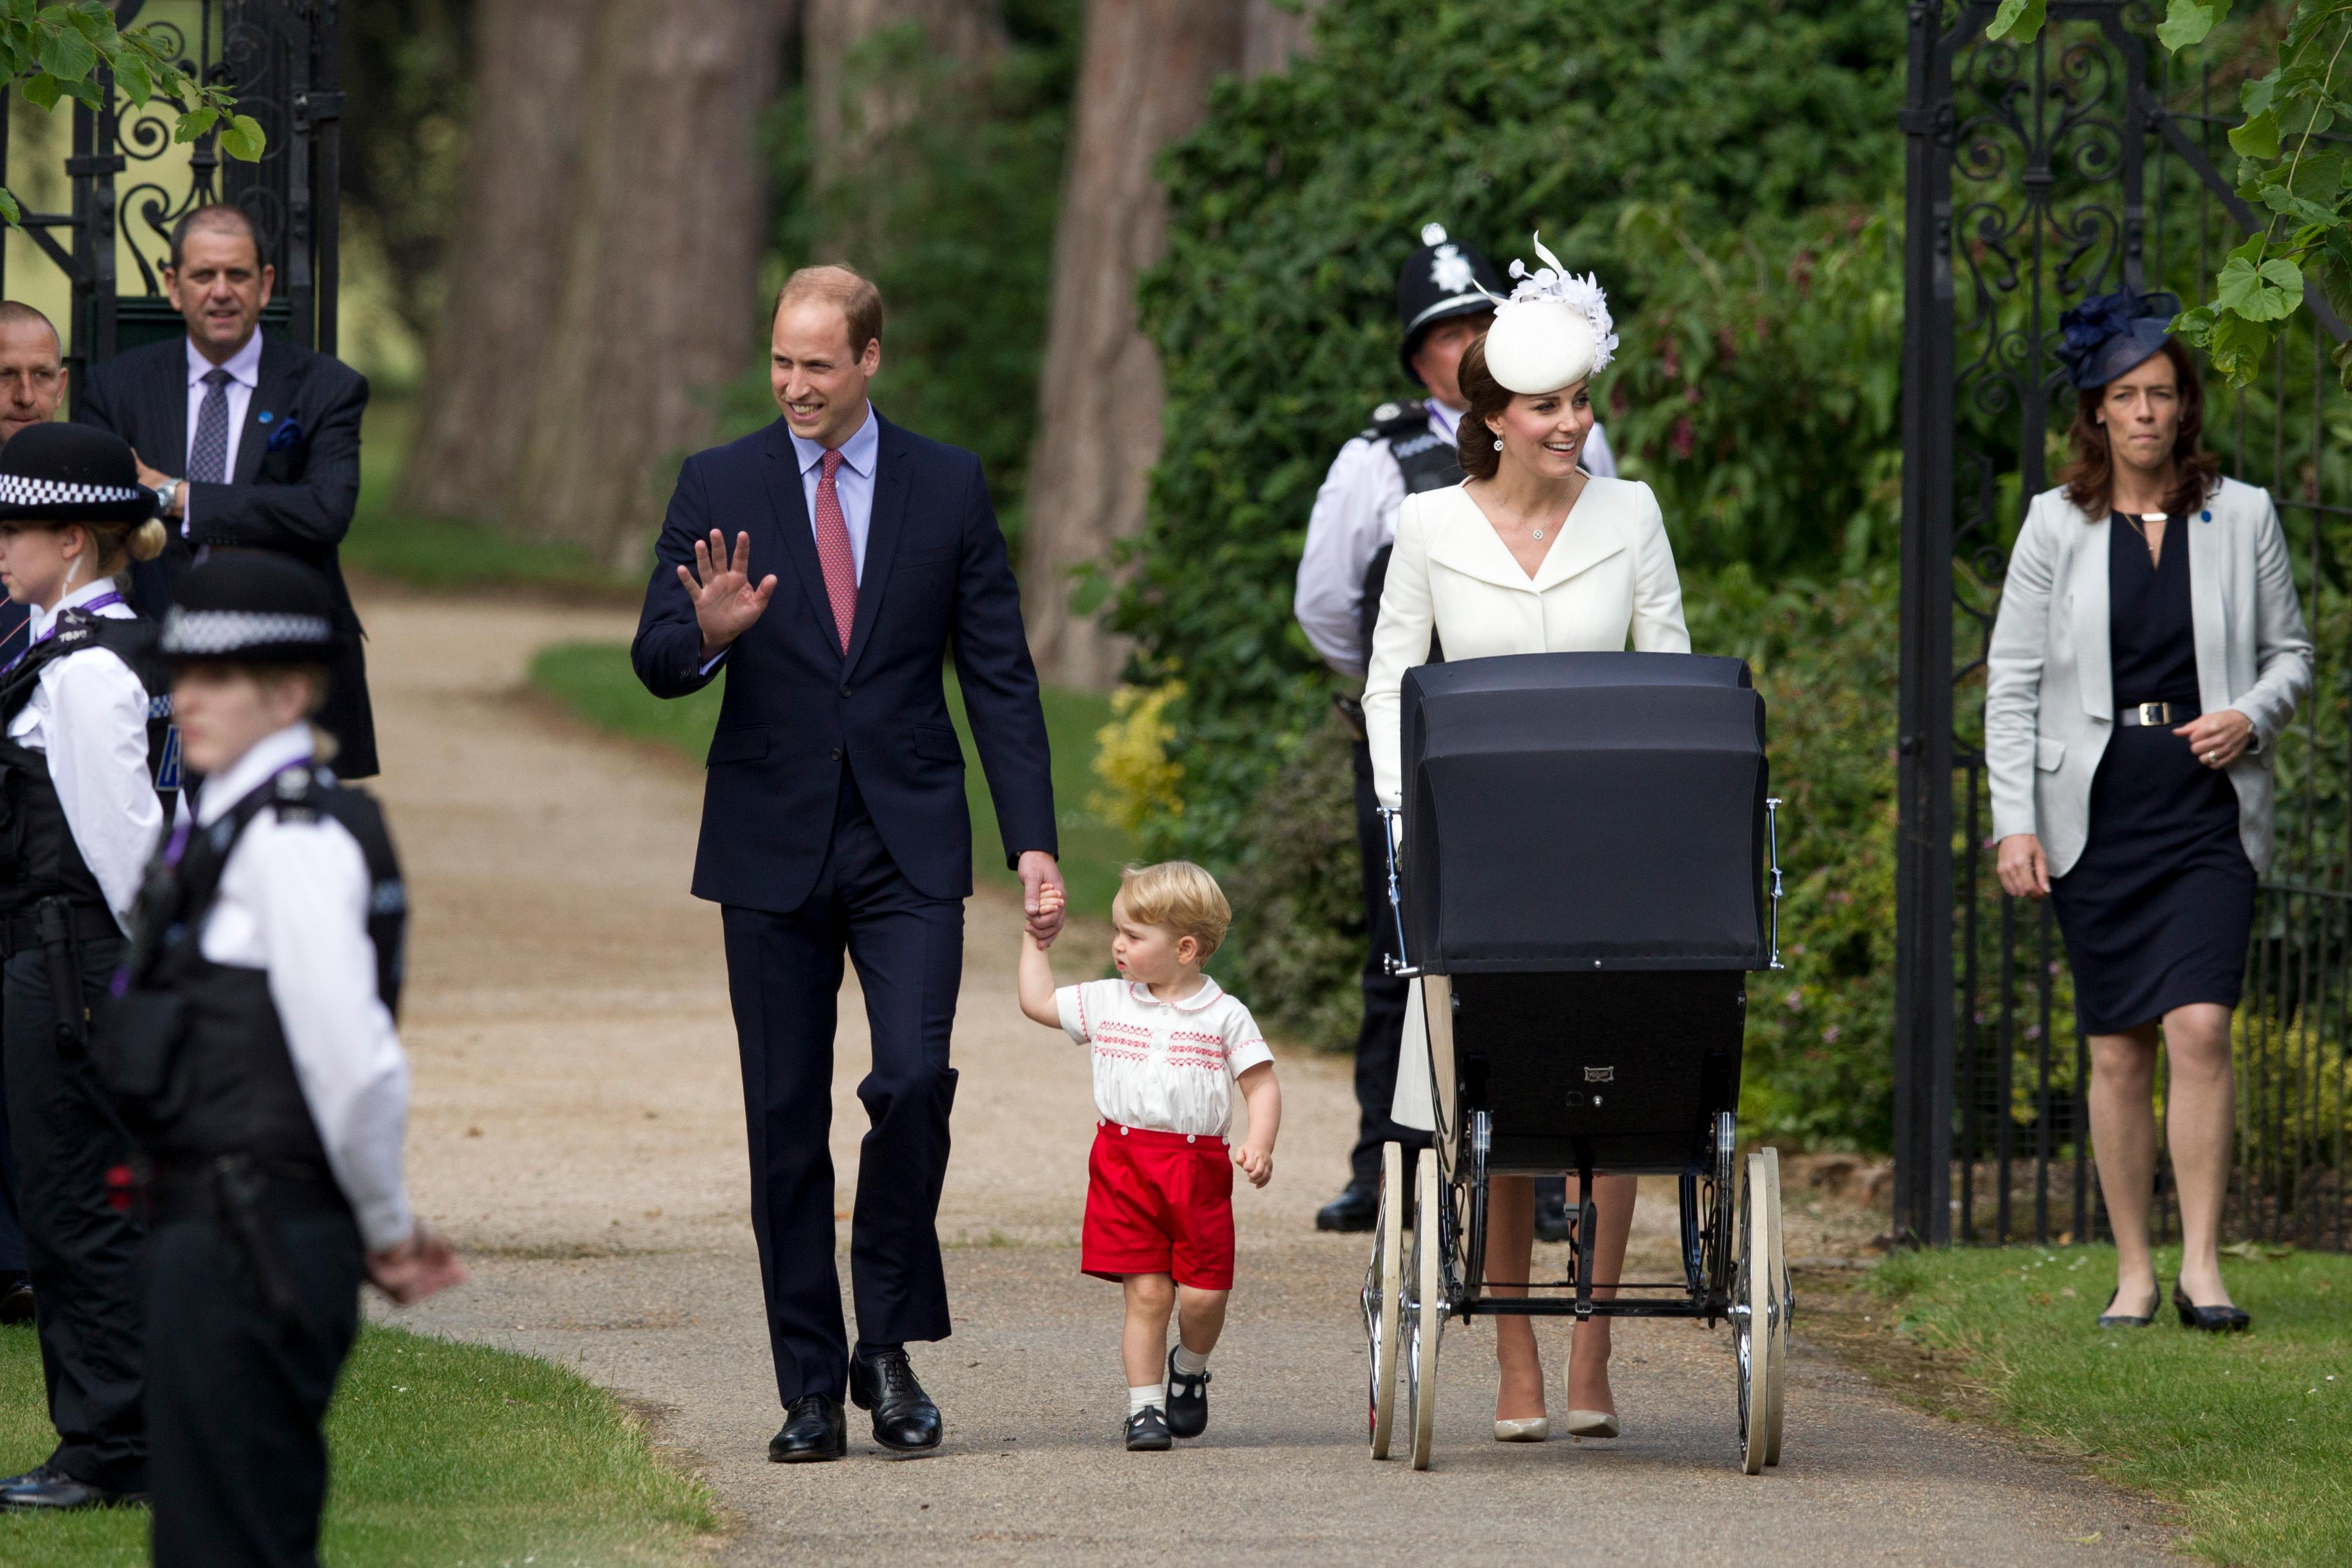 Kate Middleton Gives Princess Charlotte a Royal Stroller Ride to Christening